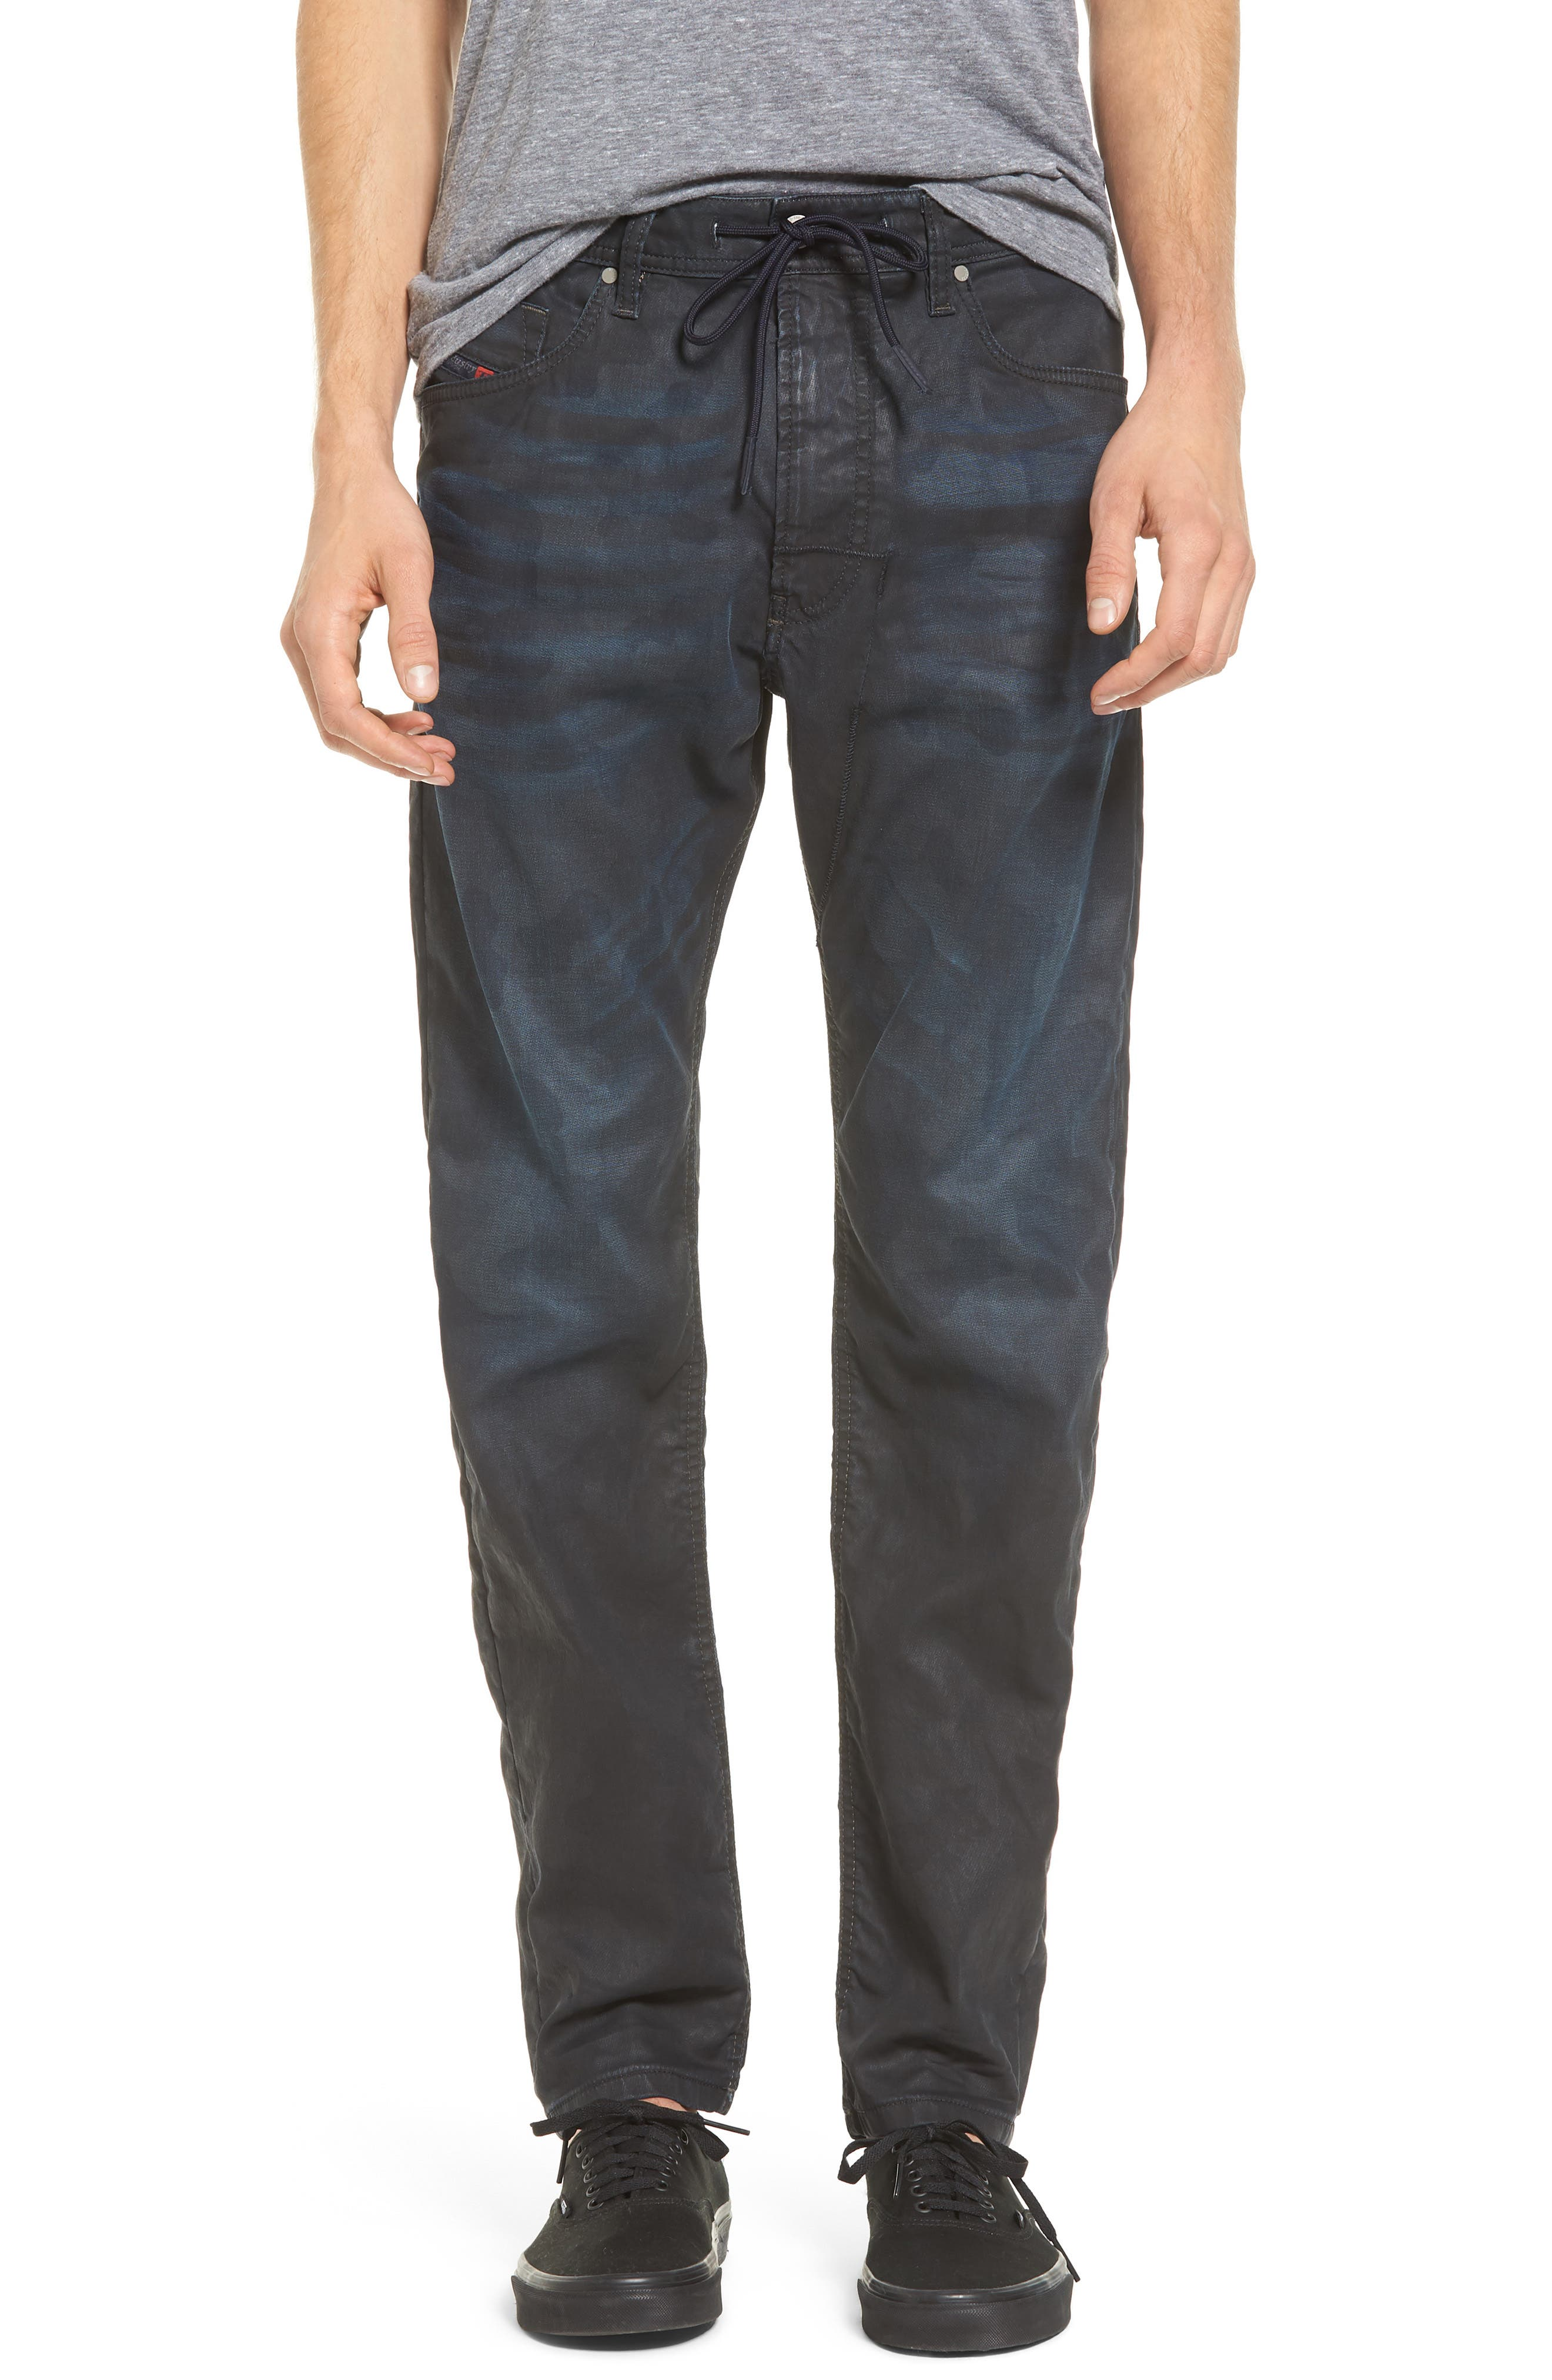 Narrot Slouchy Skinny Fit Jeans,                         Main,                         color, Denim